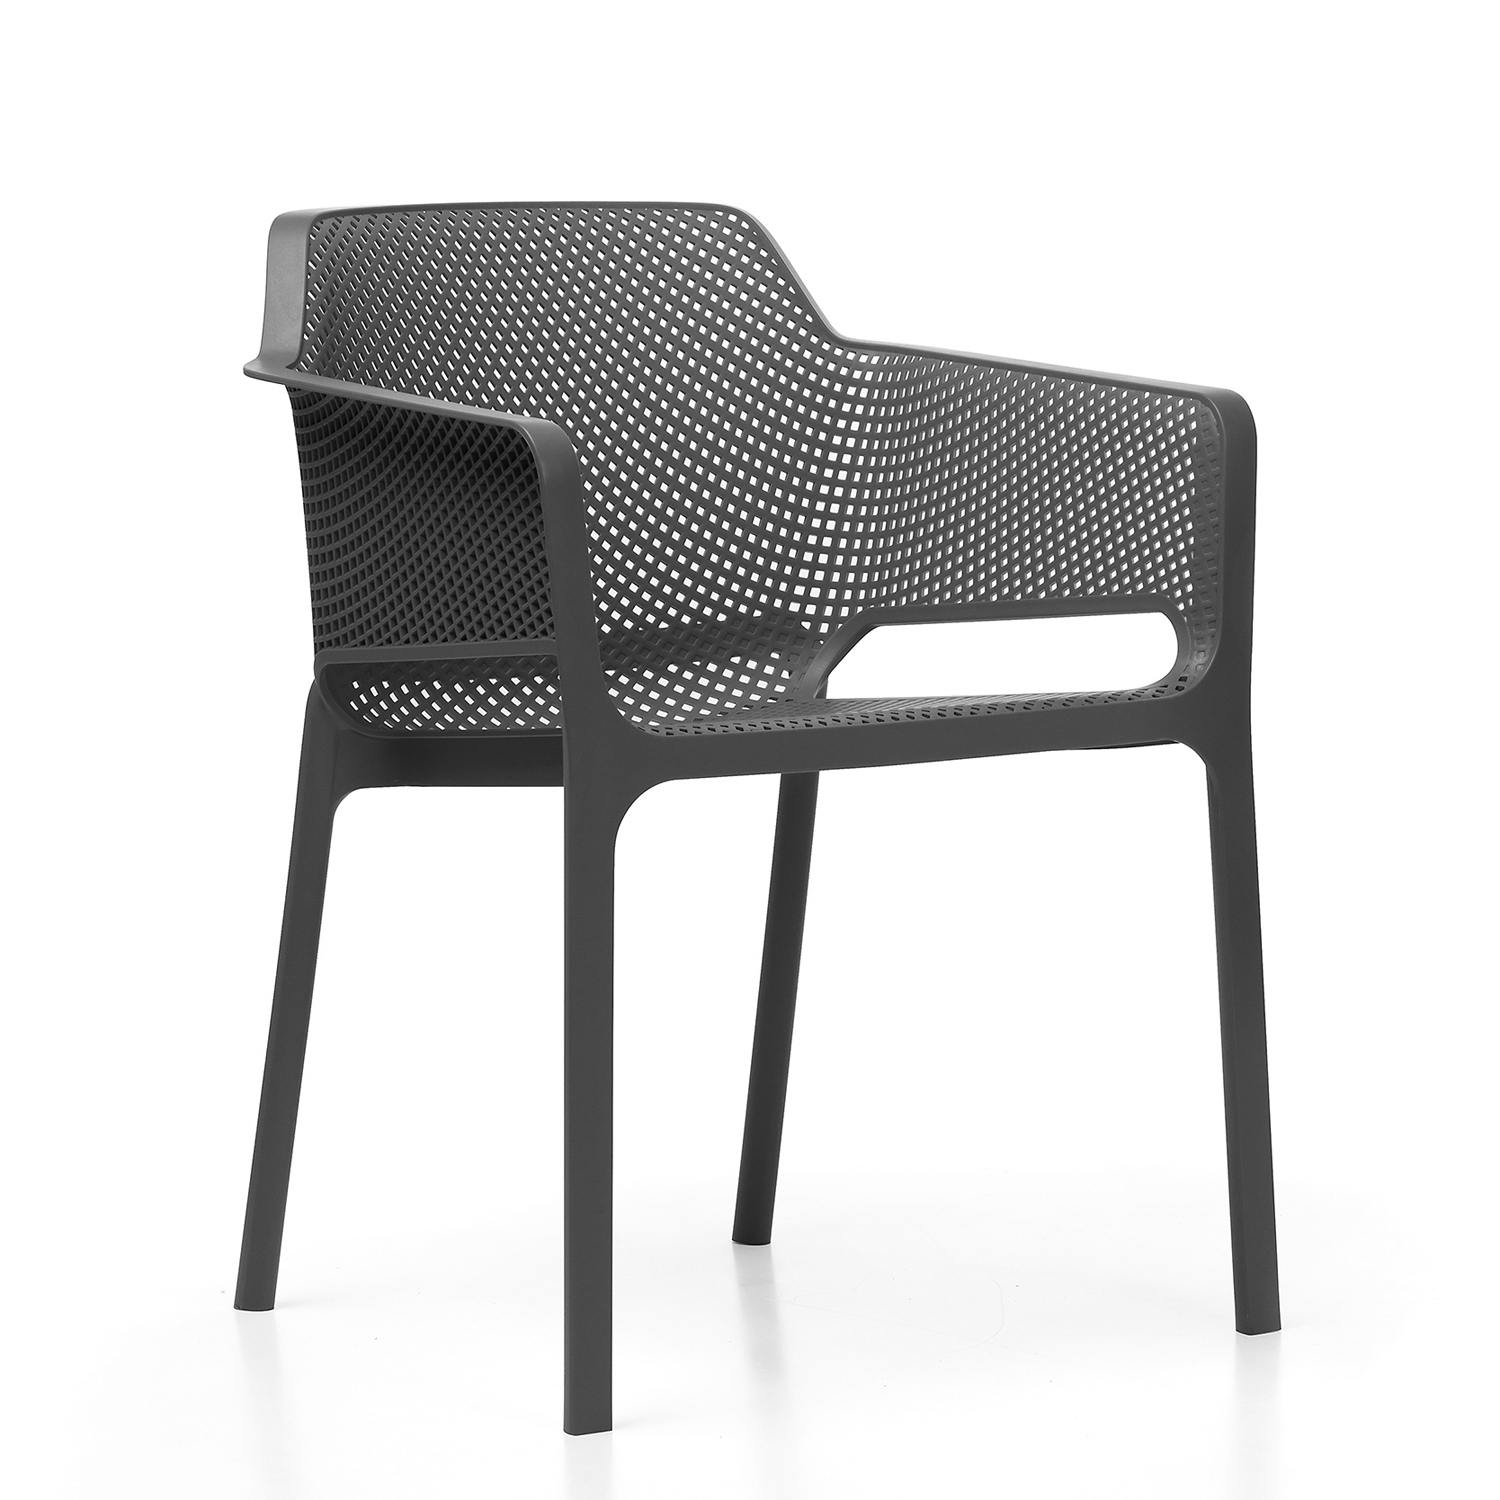 NET CHAIR ANTHRACITE PROFILE WS1